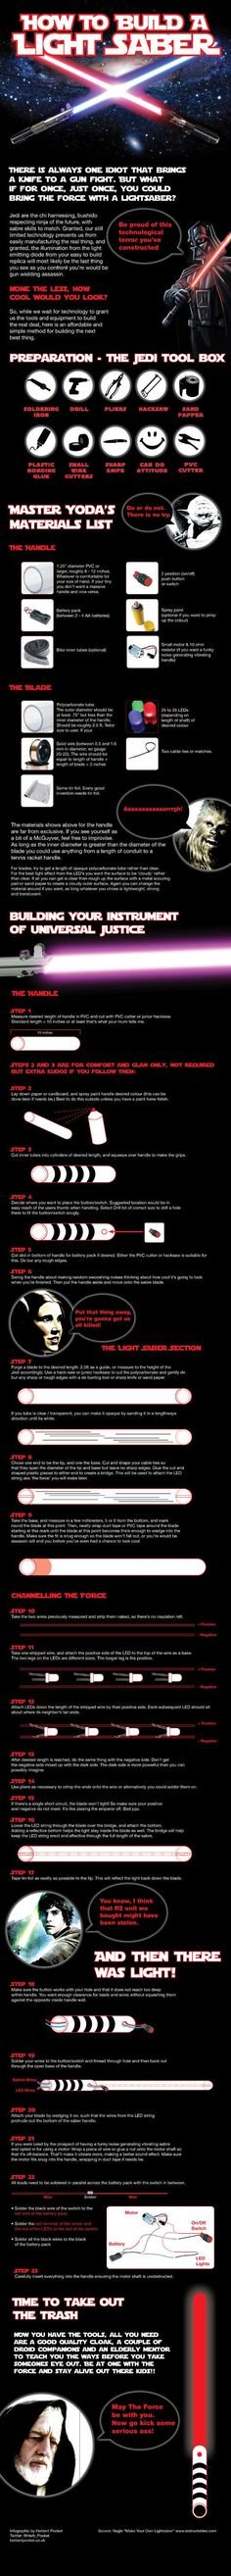 How to make your own lightsaber: